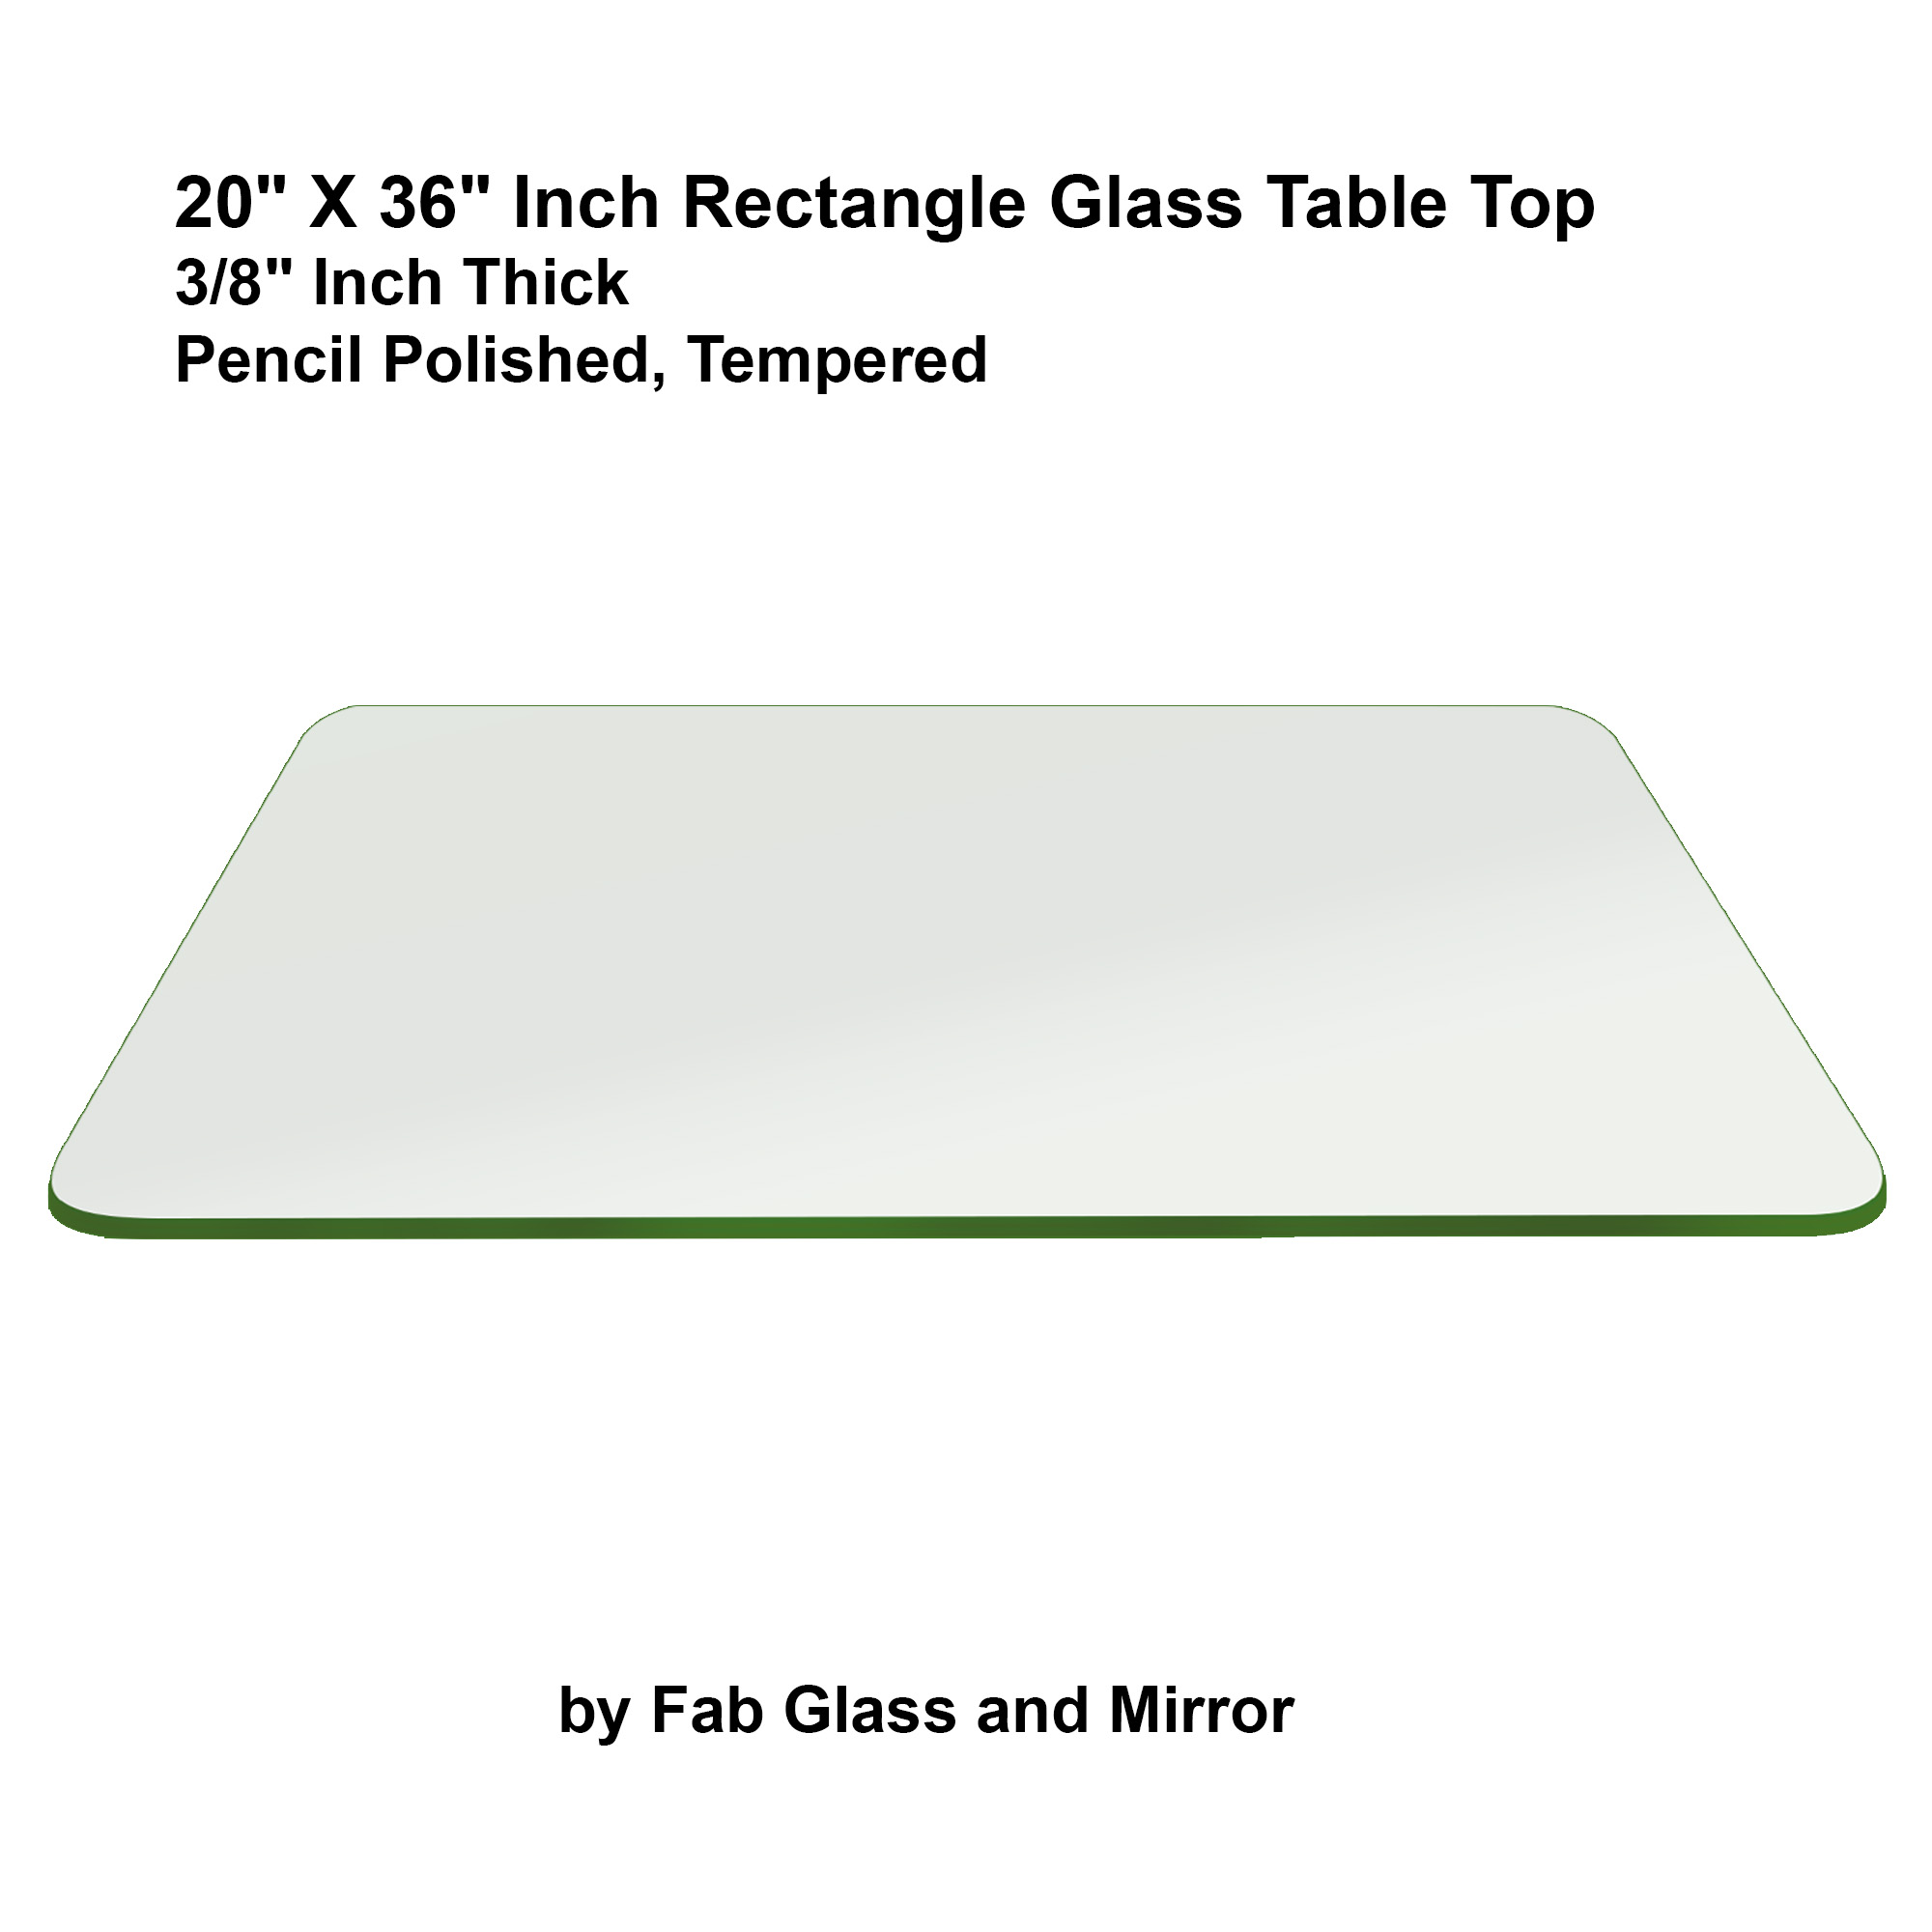 Fab glass and mirror rectangle clear glass table top w for 20 x 36 window